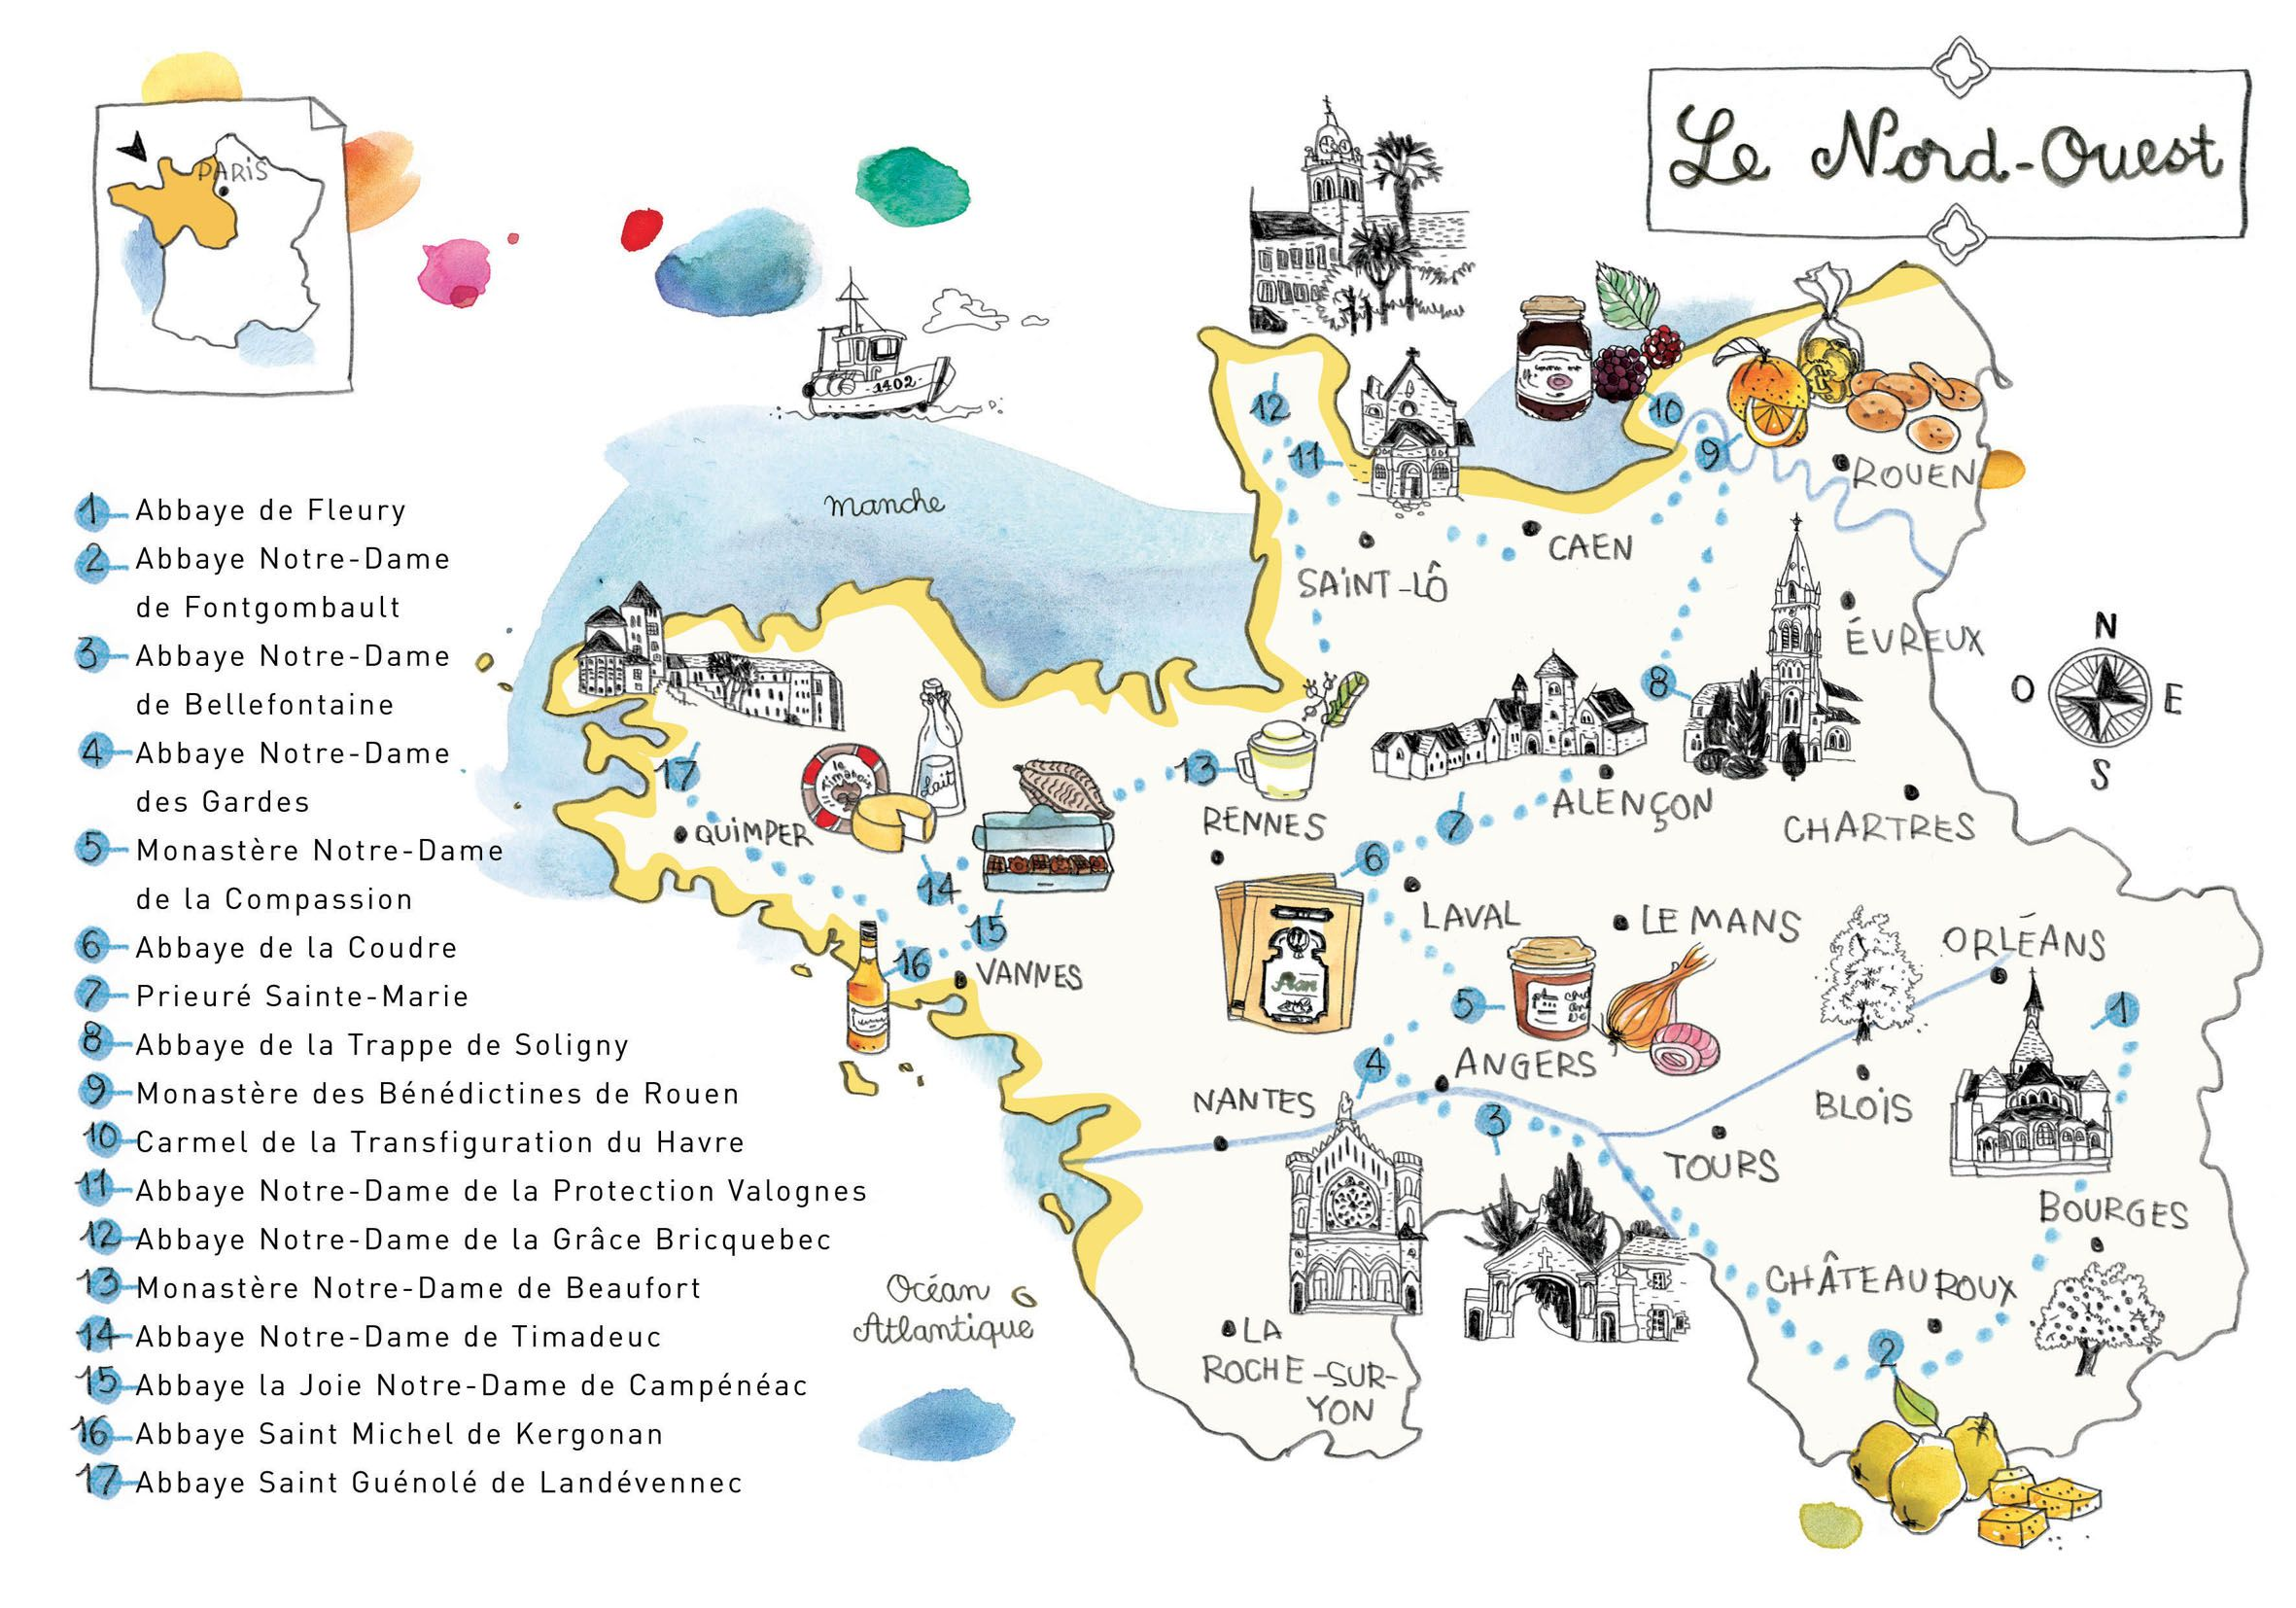 Map Of Northwest France.Guide Des Abbayes Caroline Donadieu North West France Map City